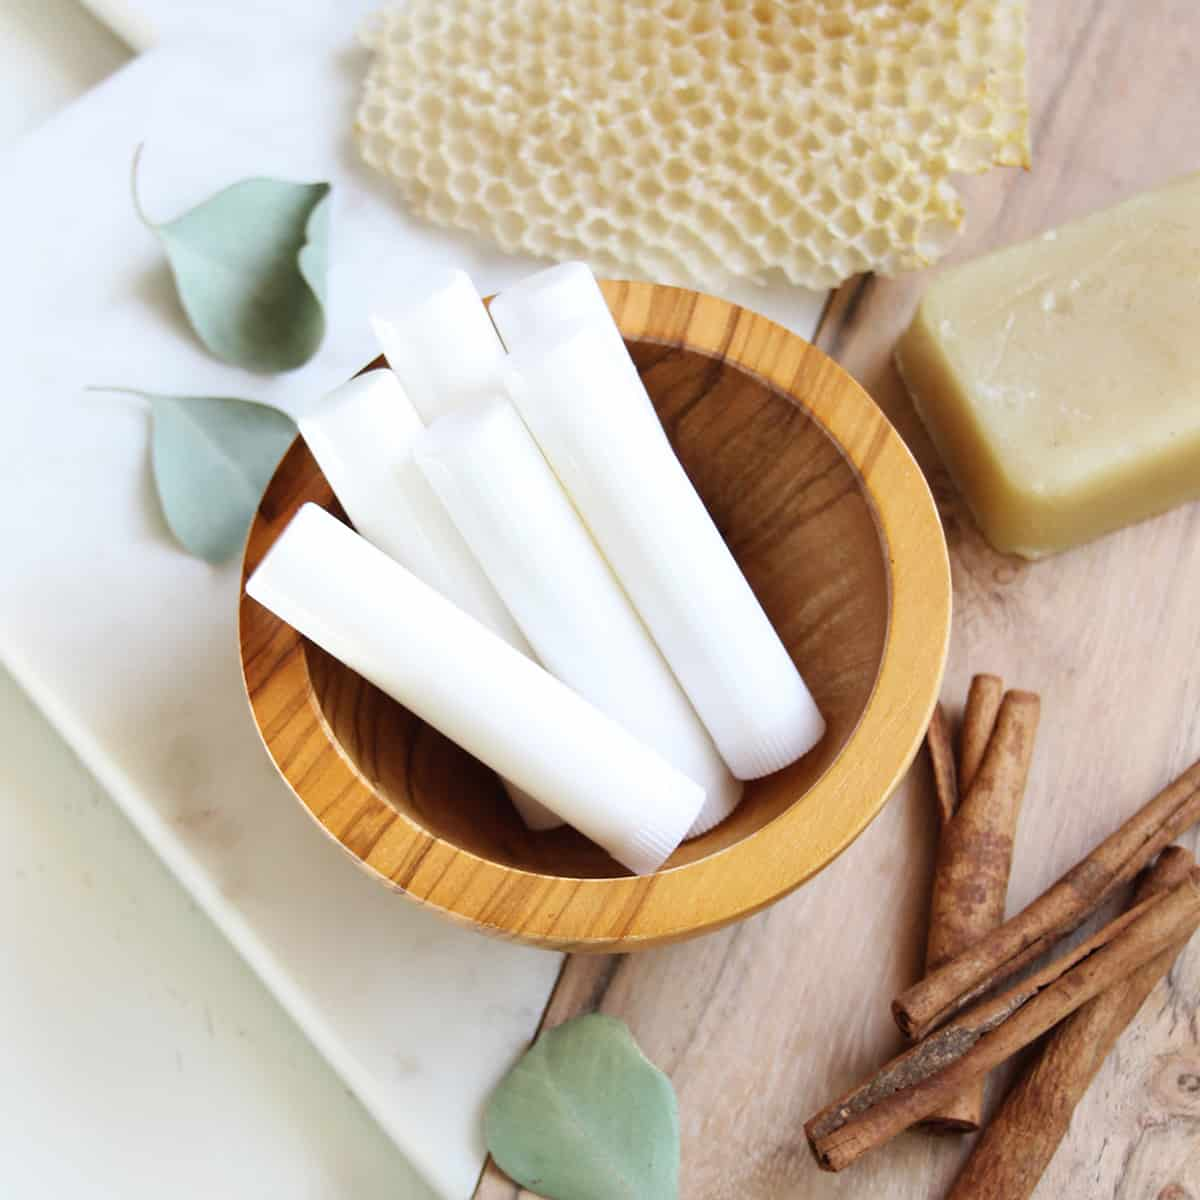 Homemade Lip Balm - So Simple You'll Want to Make More!